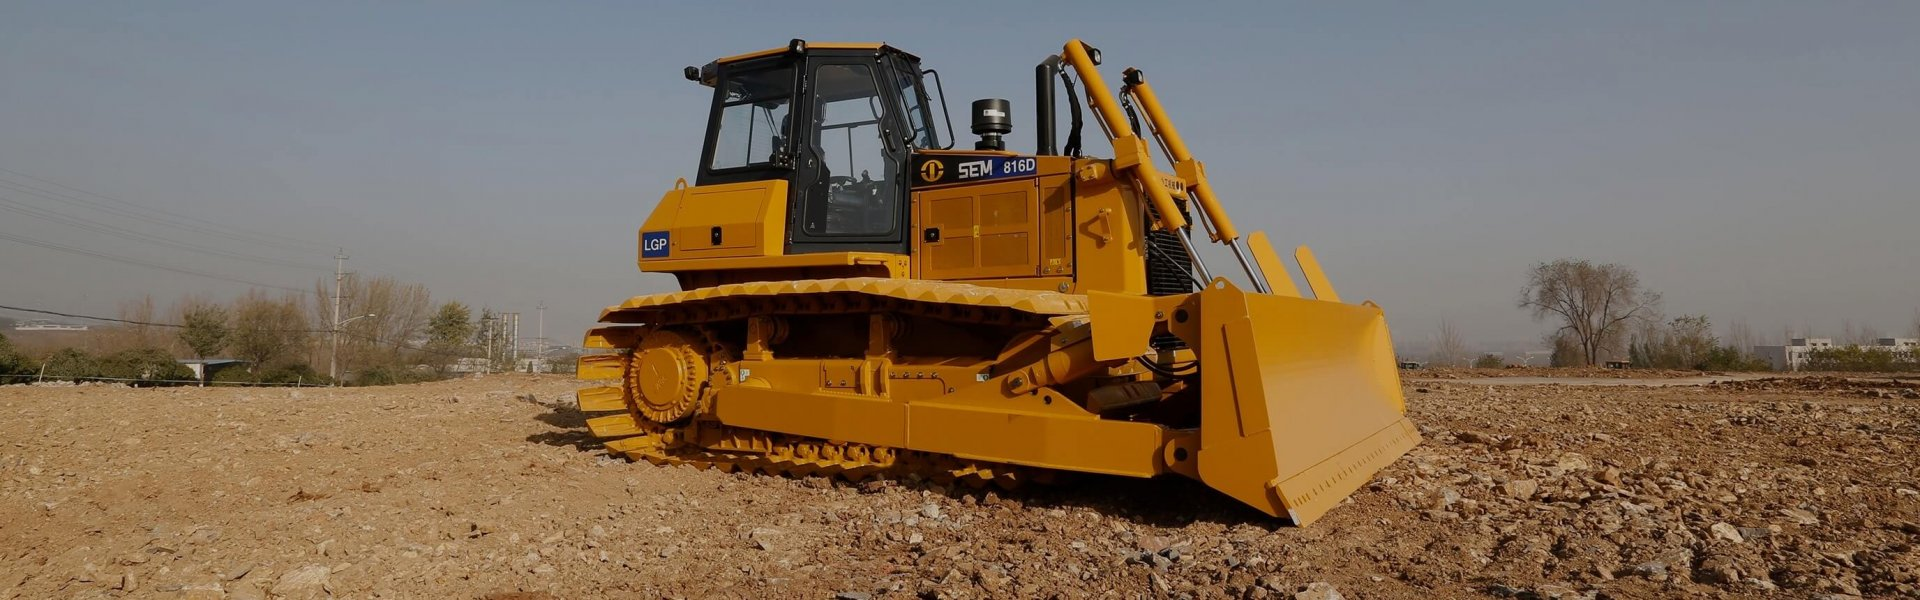 SEM Bulldozer OR Track Type Tractor 816